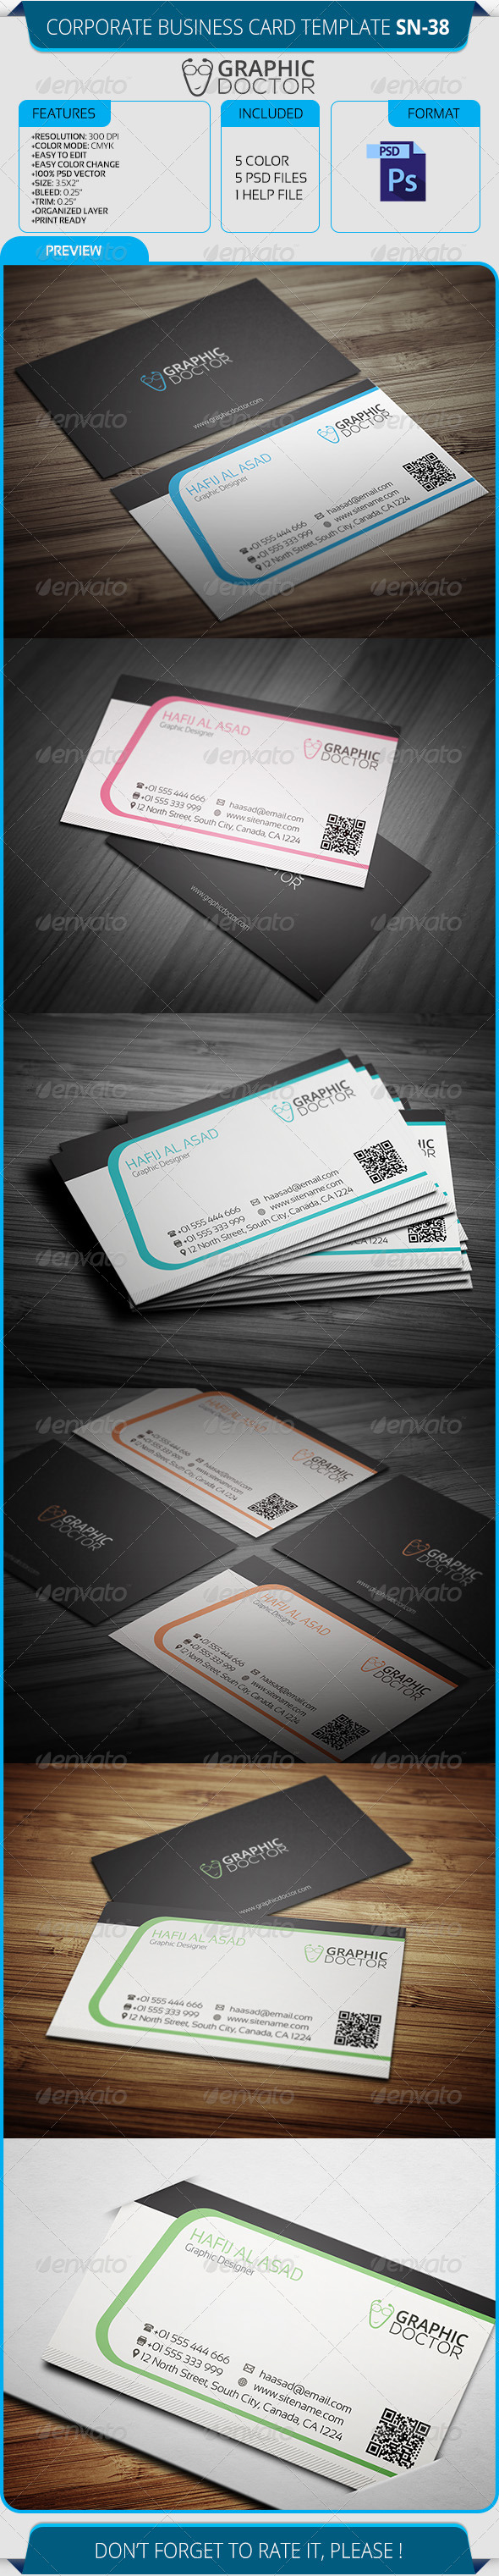 GraphicRiver Corporate Business Card Template SN-38 8545215